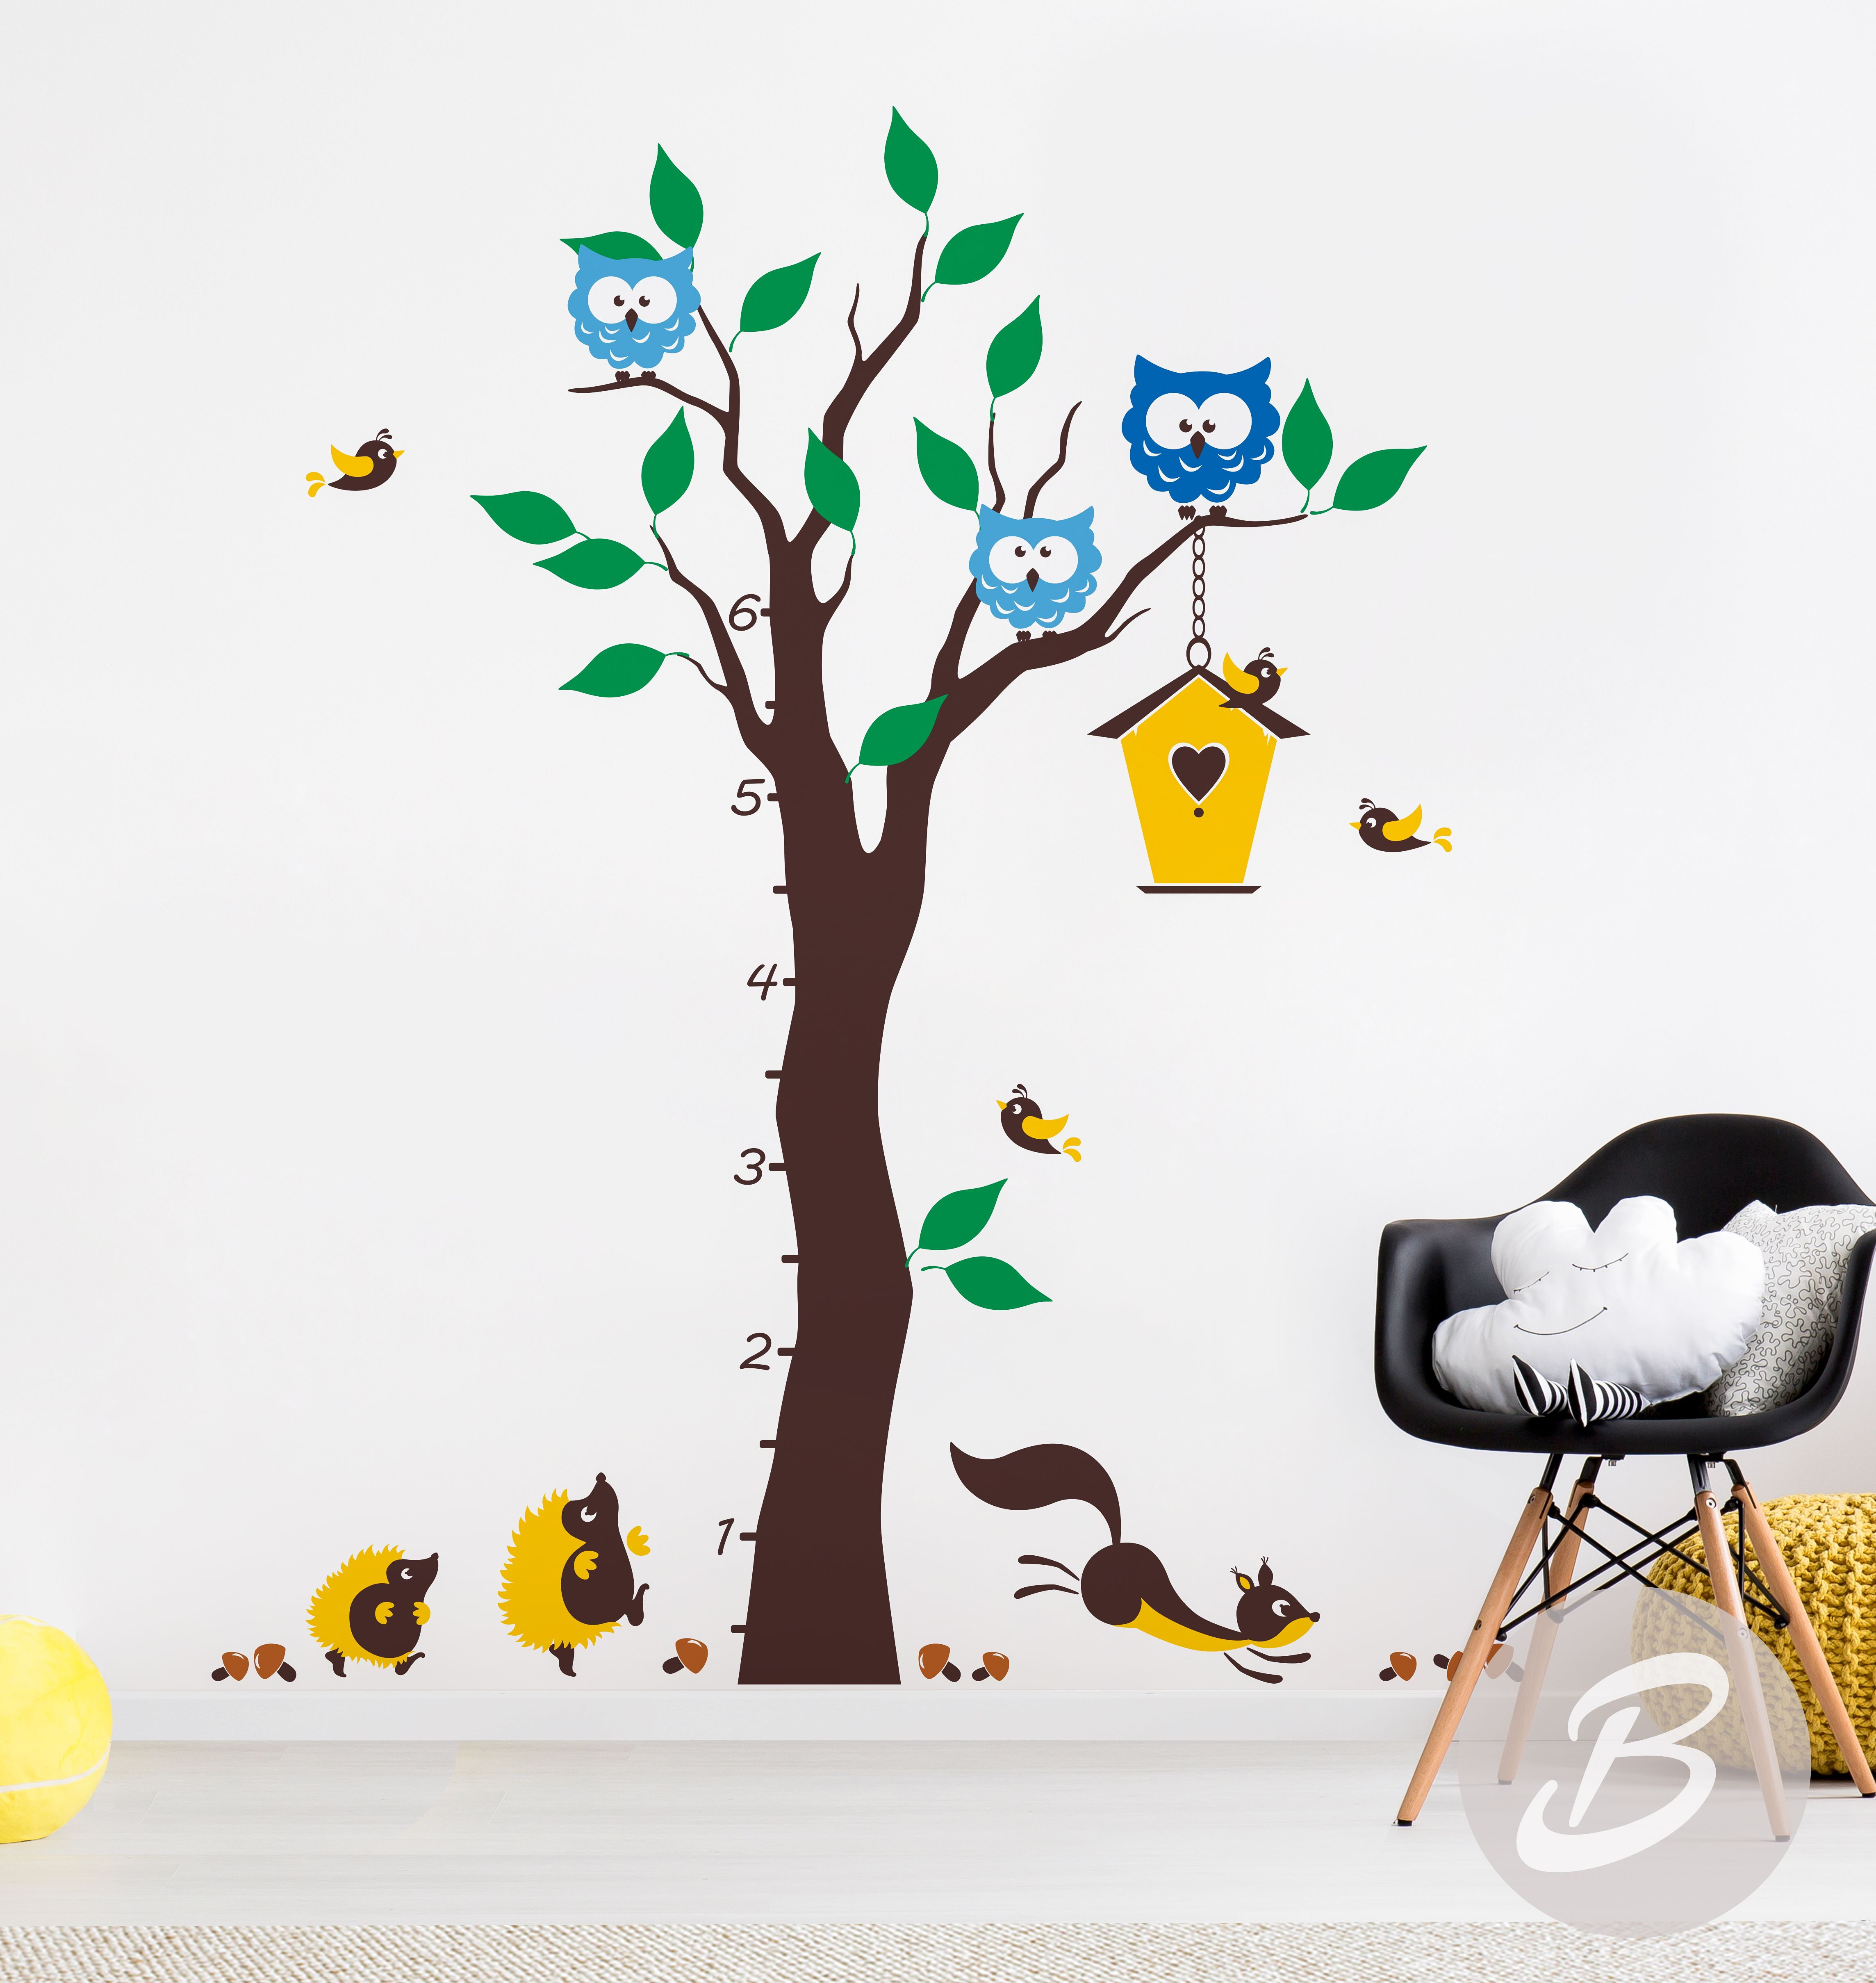 Growth Chart Colorful Tree Wall Decal Wall Decal With Animals - Wall decals birdsbirds couple on branch wall decal beautiful bird vinyl sticker